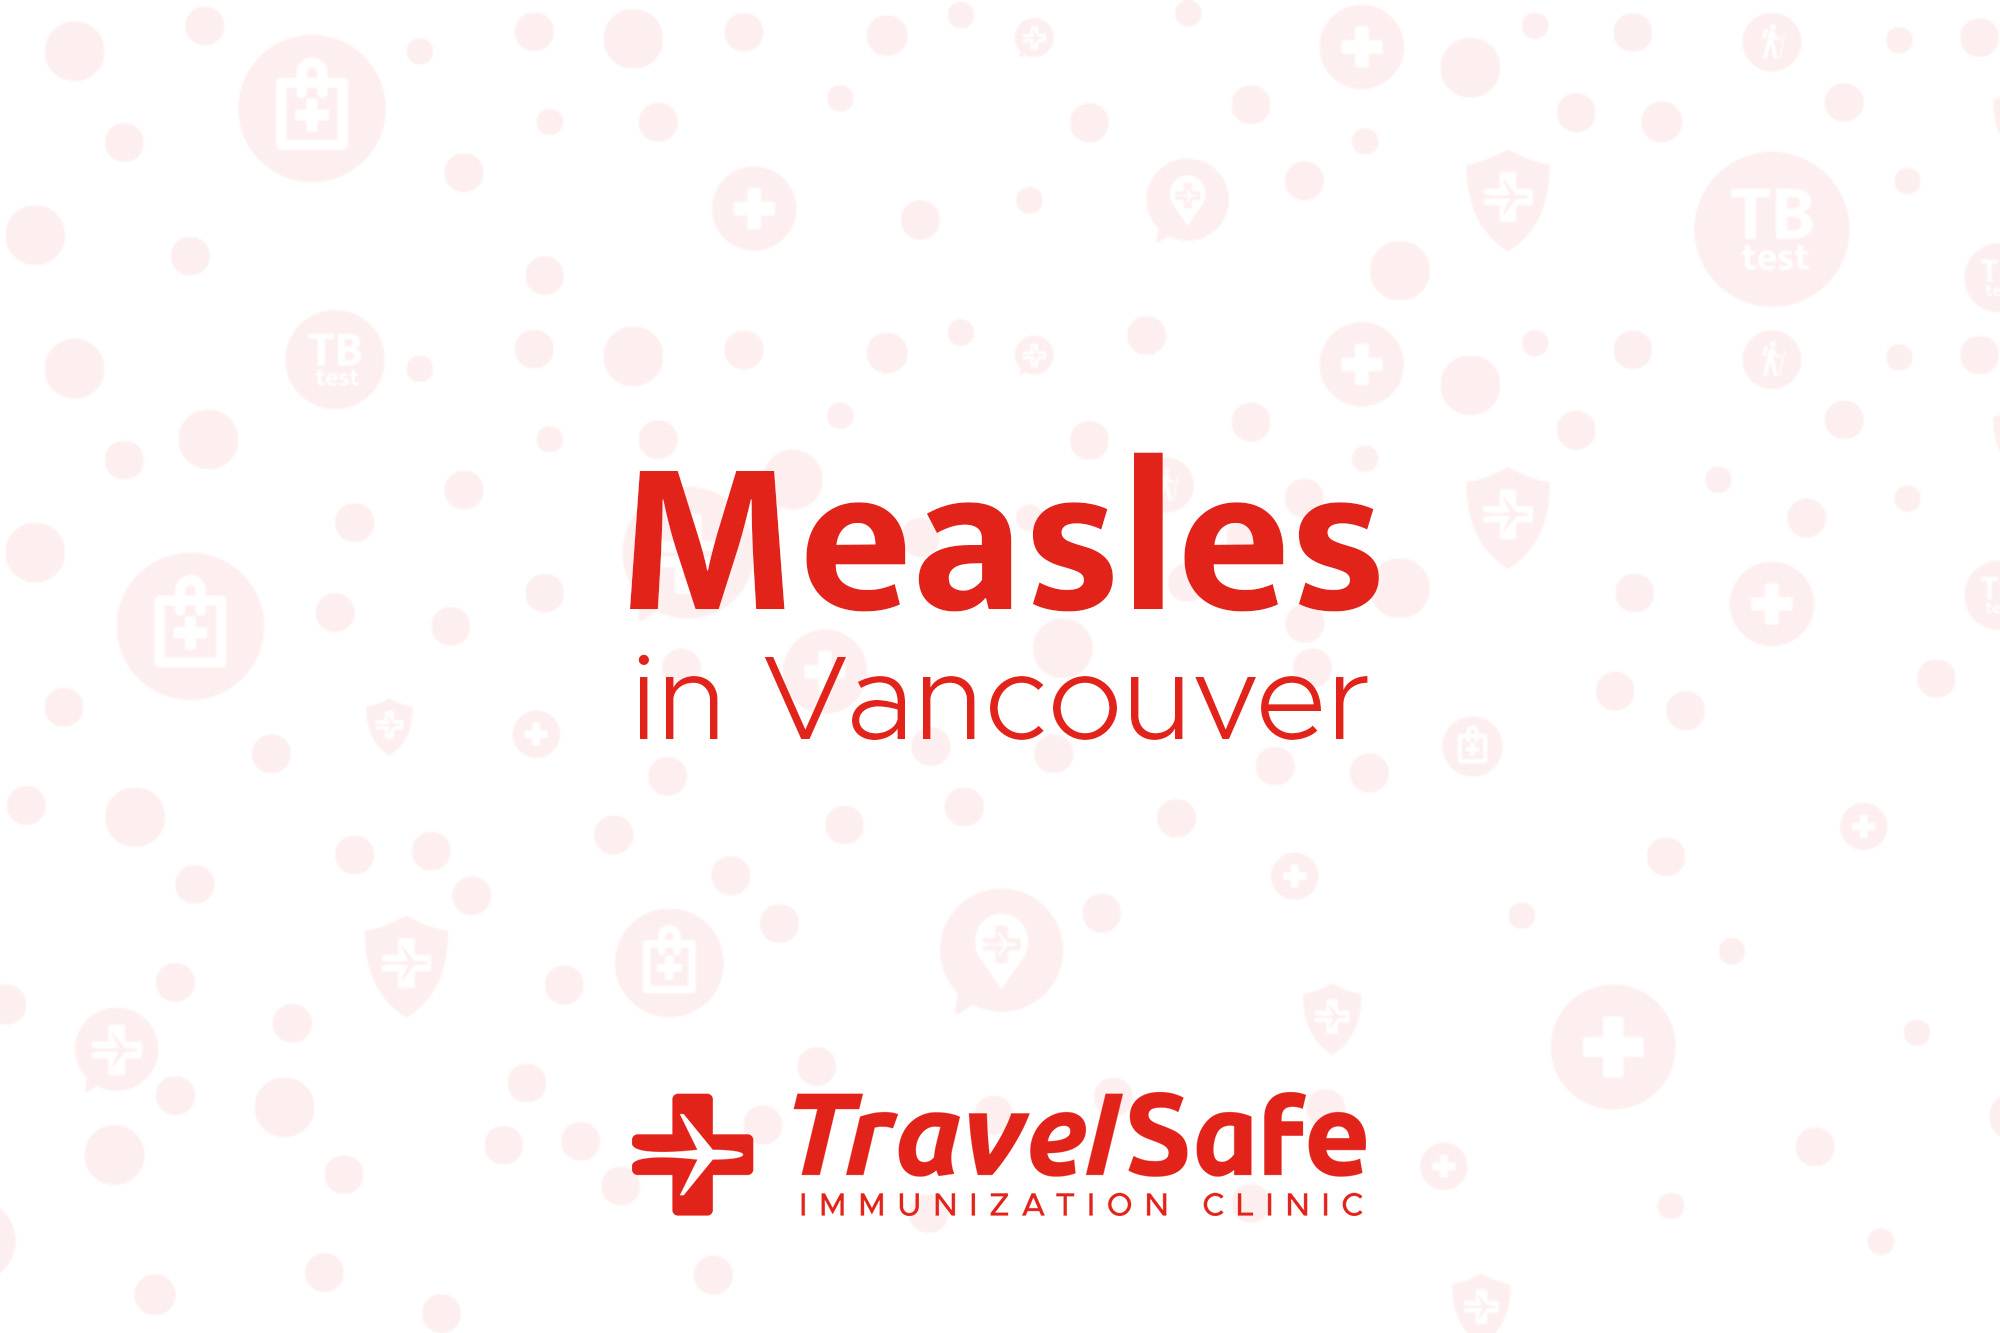 Measles in vancouver - TravelSafe